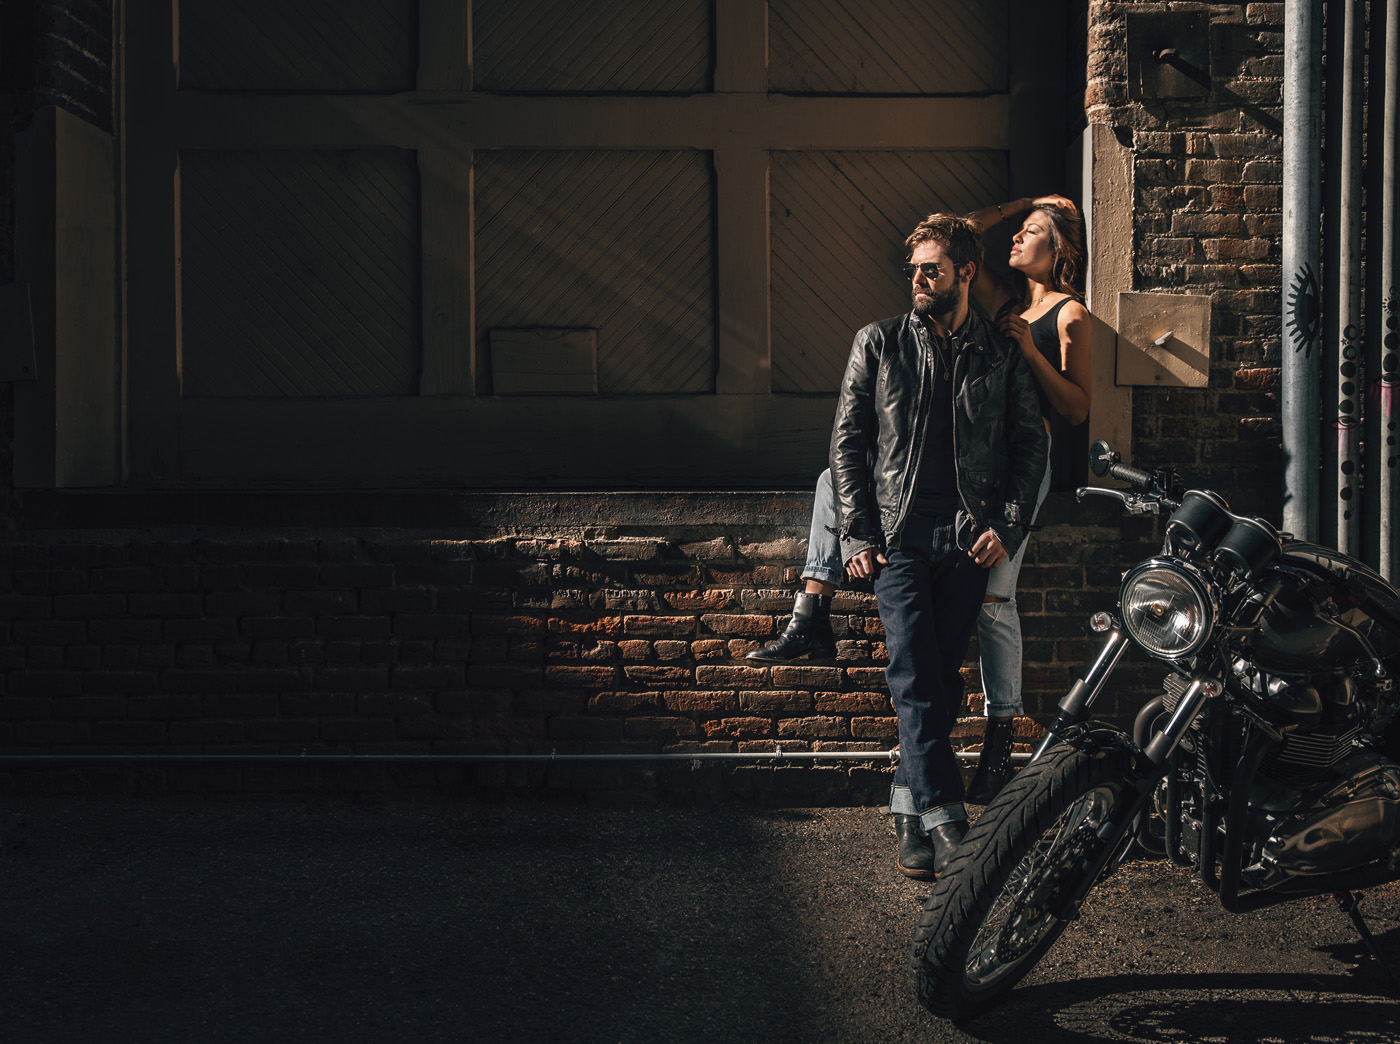 A man and woman lean against brick wall with motorcycle in foreground.